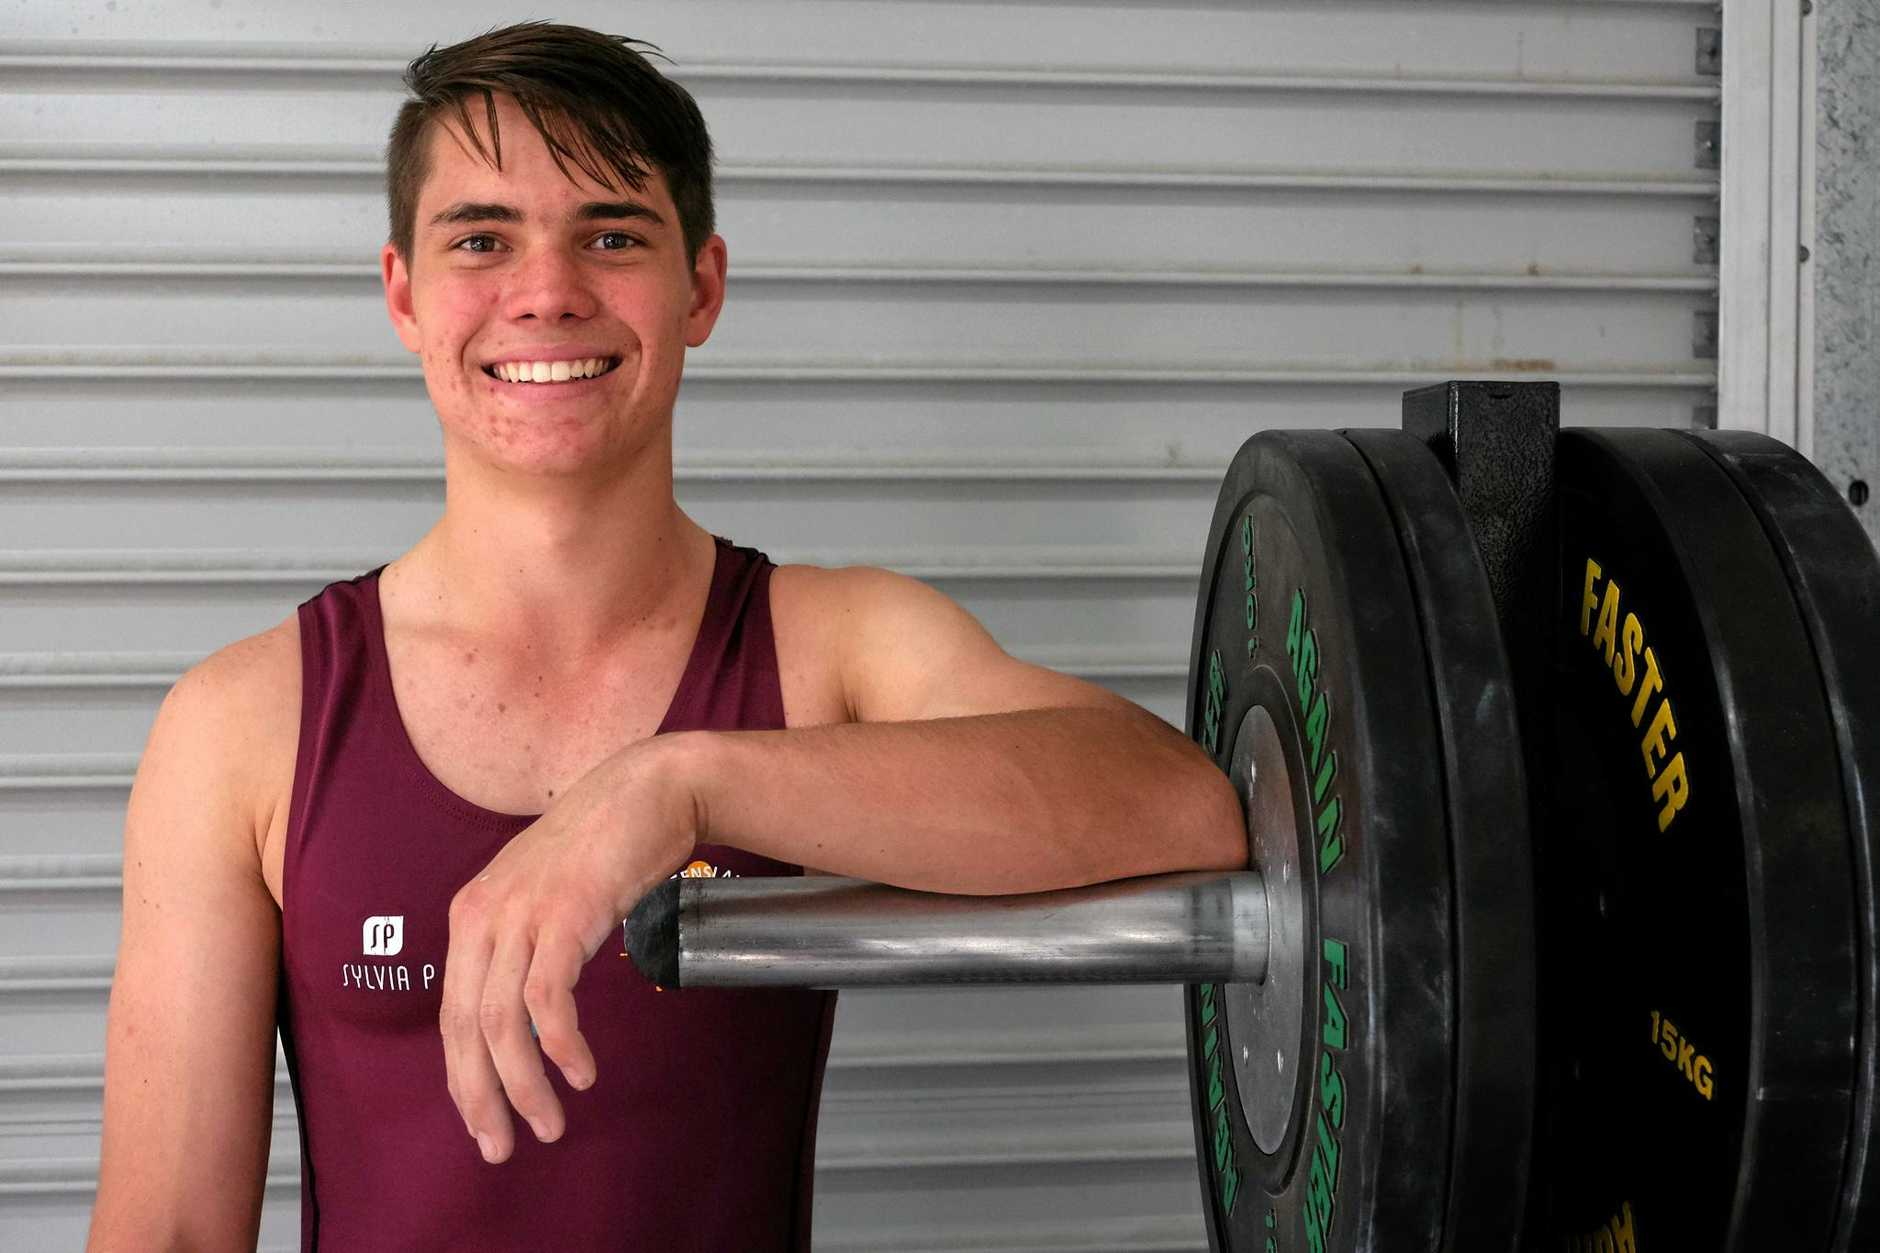 GETTING RESULTS: Weightlifter Matthew Eichmann has done extremely well in the short time he has been involved in the sport.